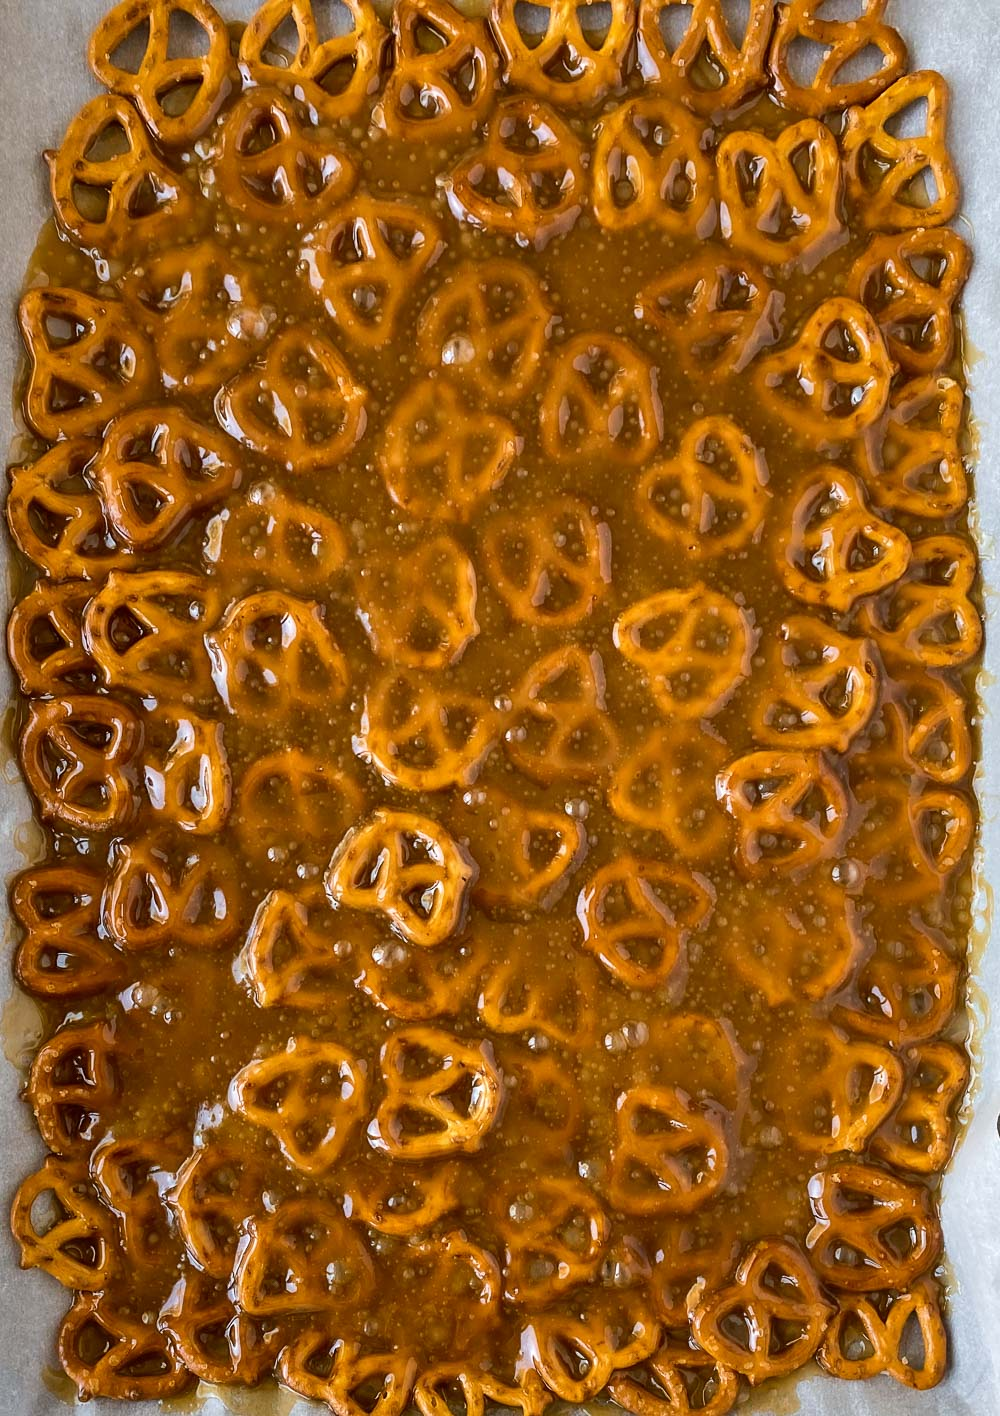 Toffee over pretzels